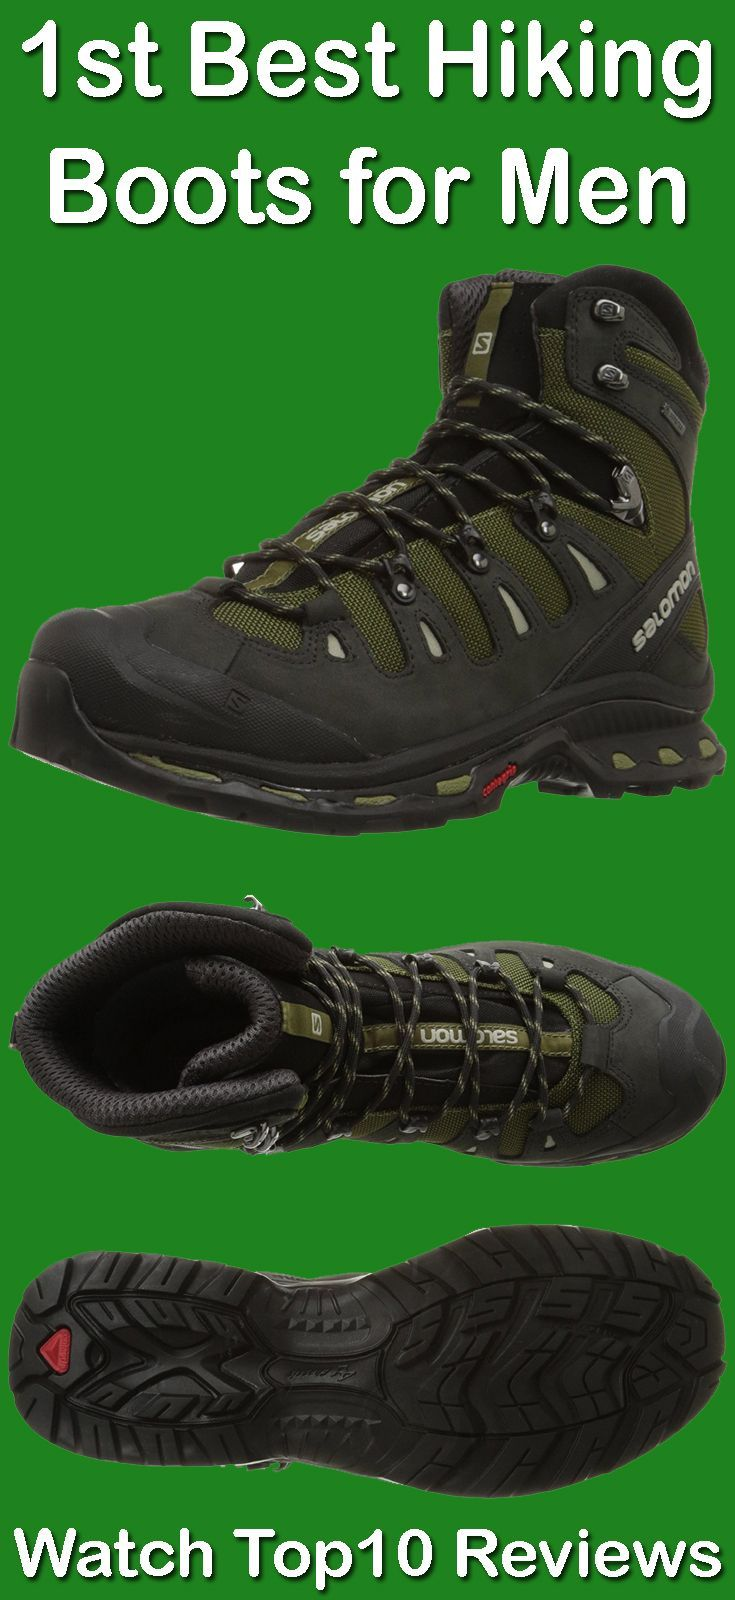 Salomon Men's Quest 4D 2 GTX Hiking Boot: Salomon Quest 4D 2 GTX features Gore-Tex waterproof protection, rugged lacing hardware and protective rubber toe cap. It has Salomon 4D Chassis for stability/protection and Molded EVA Ortholite removable footbed. Our first best hiking boots for men provide outstanding stability and grip, with a more ergonomic tongue for improved comfort